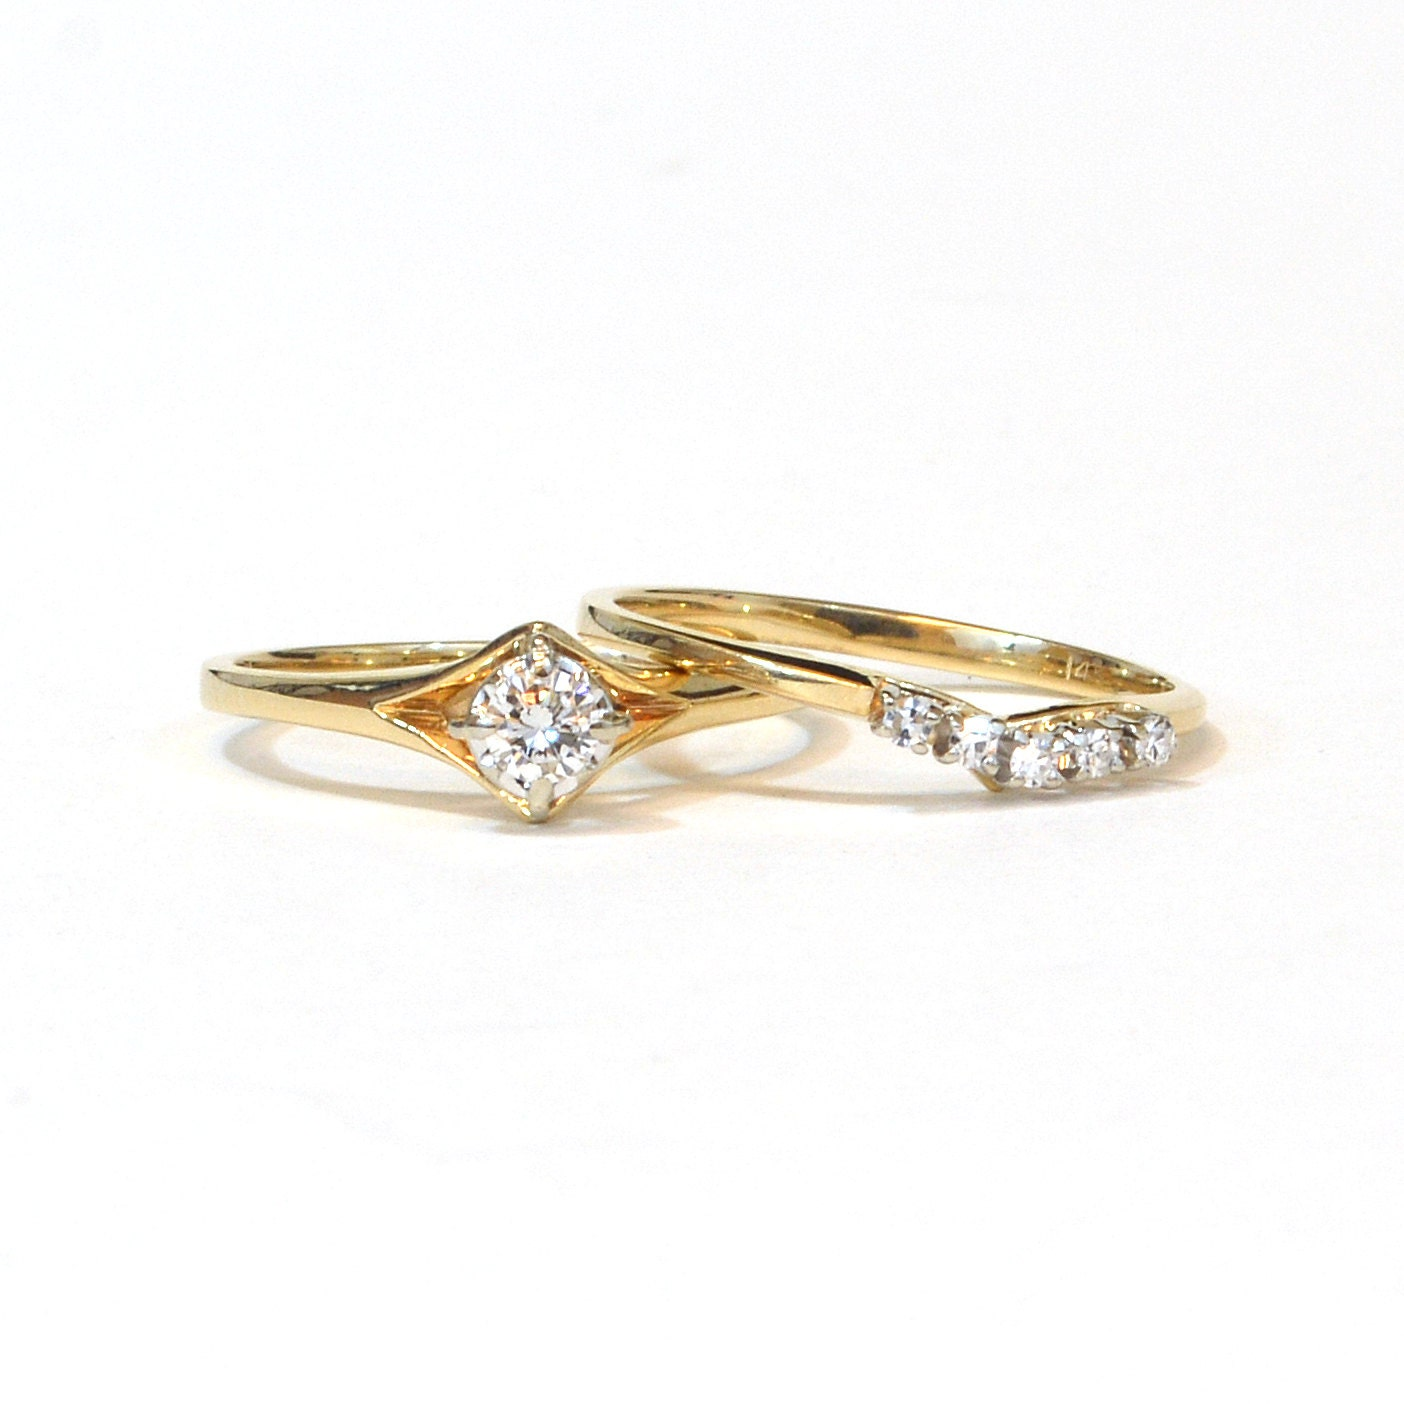 Vintage Diamond Wedding Set Engagement Ring by JewelryWanderlust